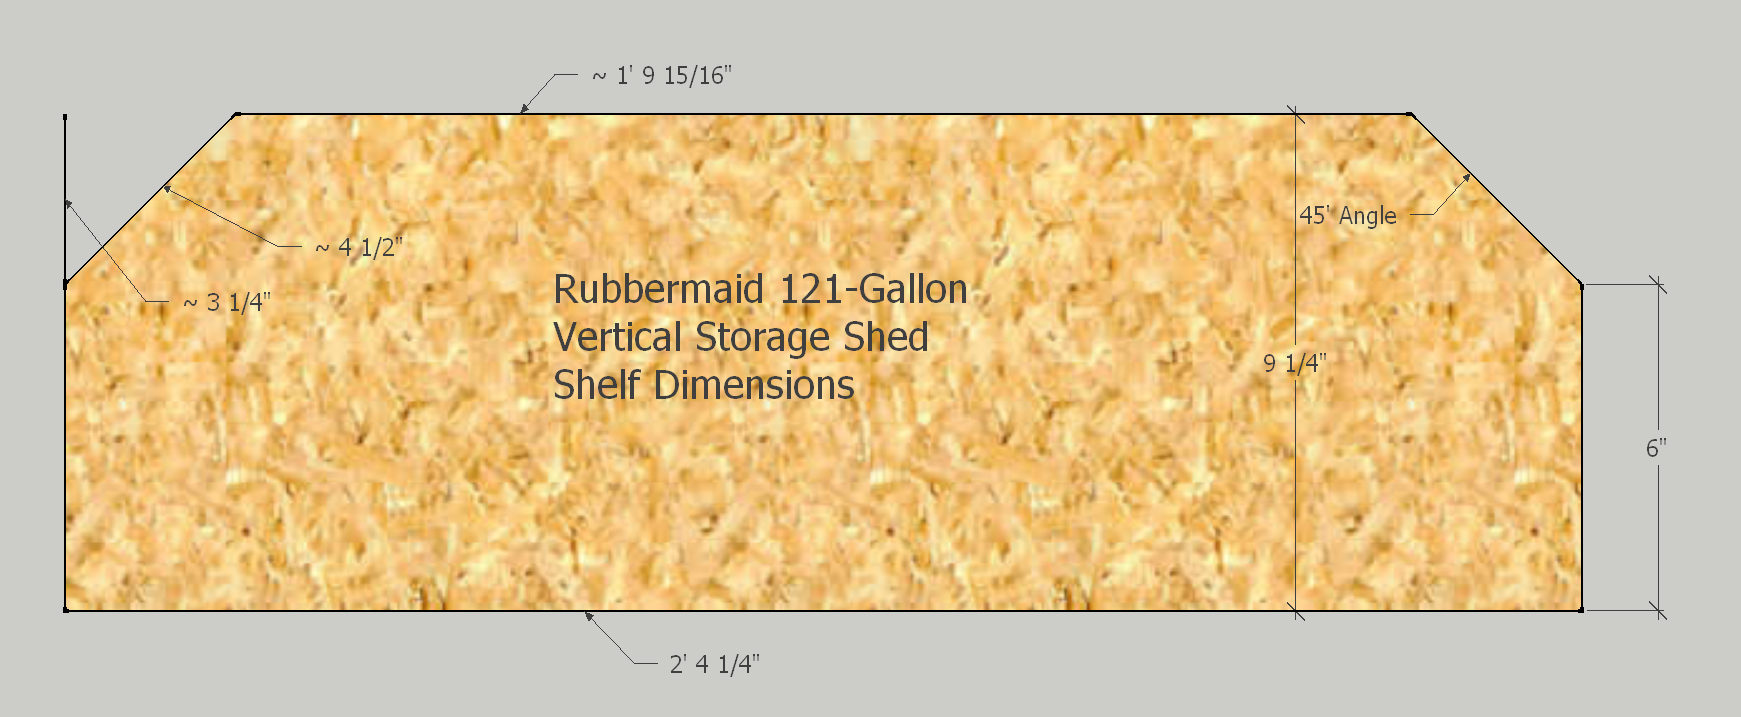 Rubbermaid Vertical Storage Shed Shelves Dimensions